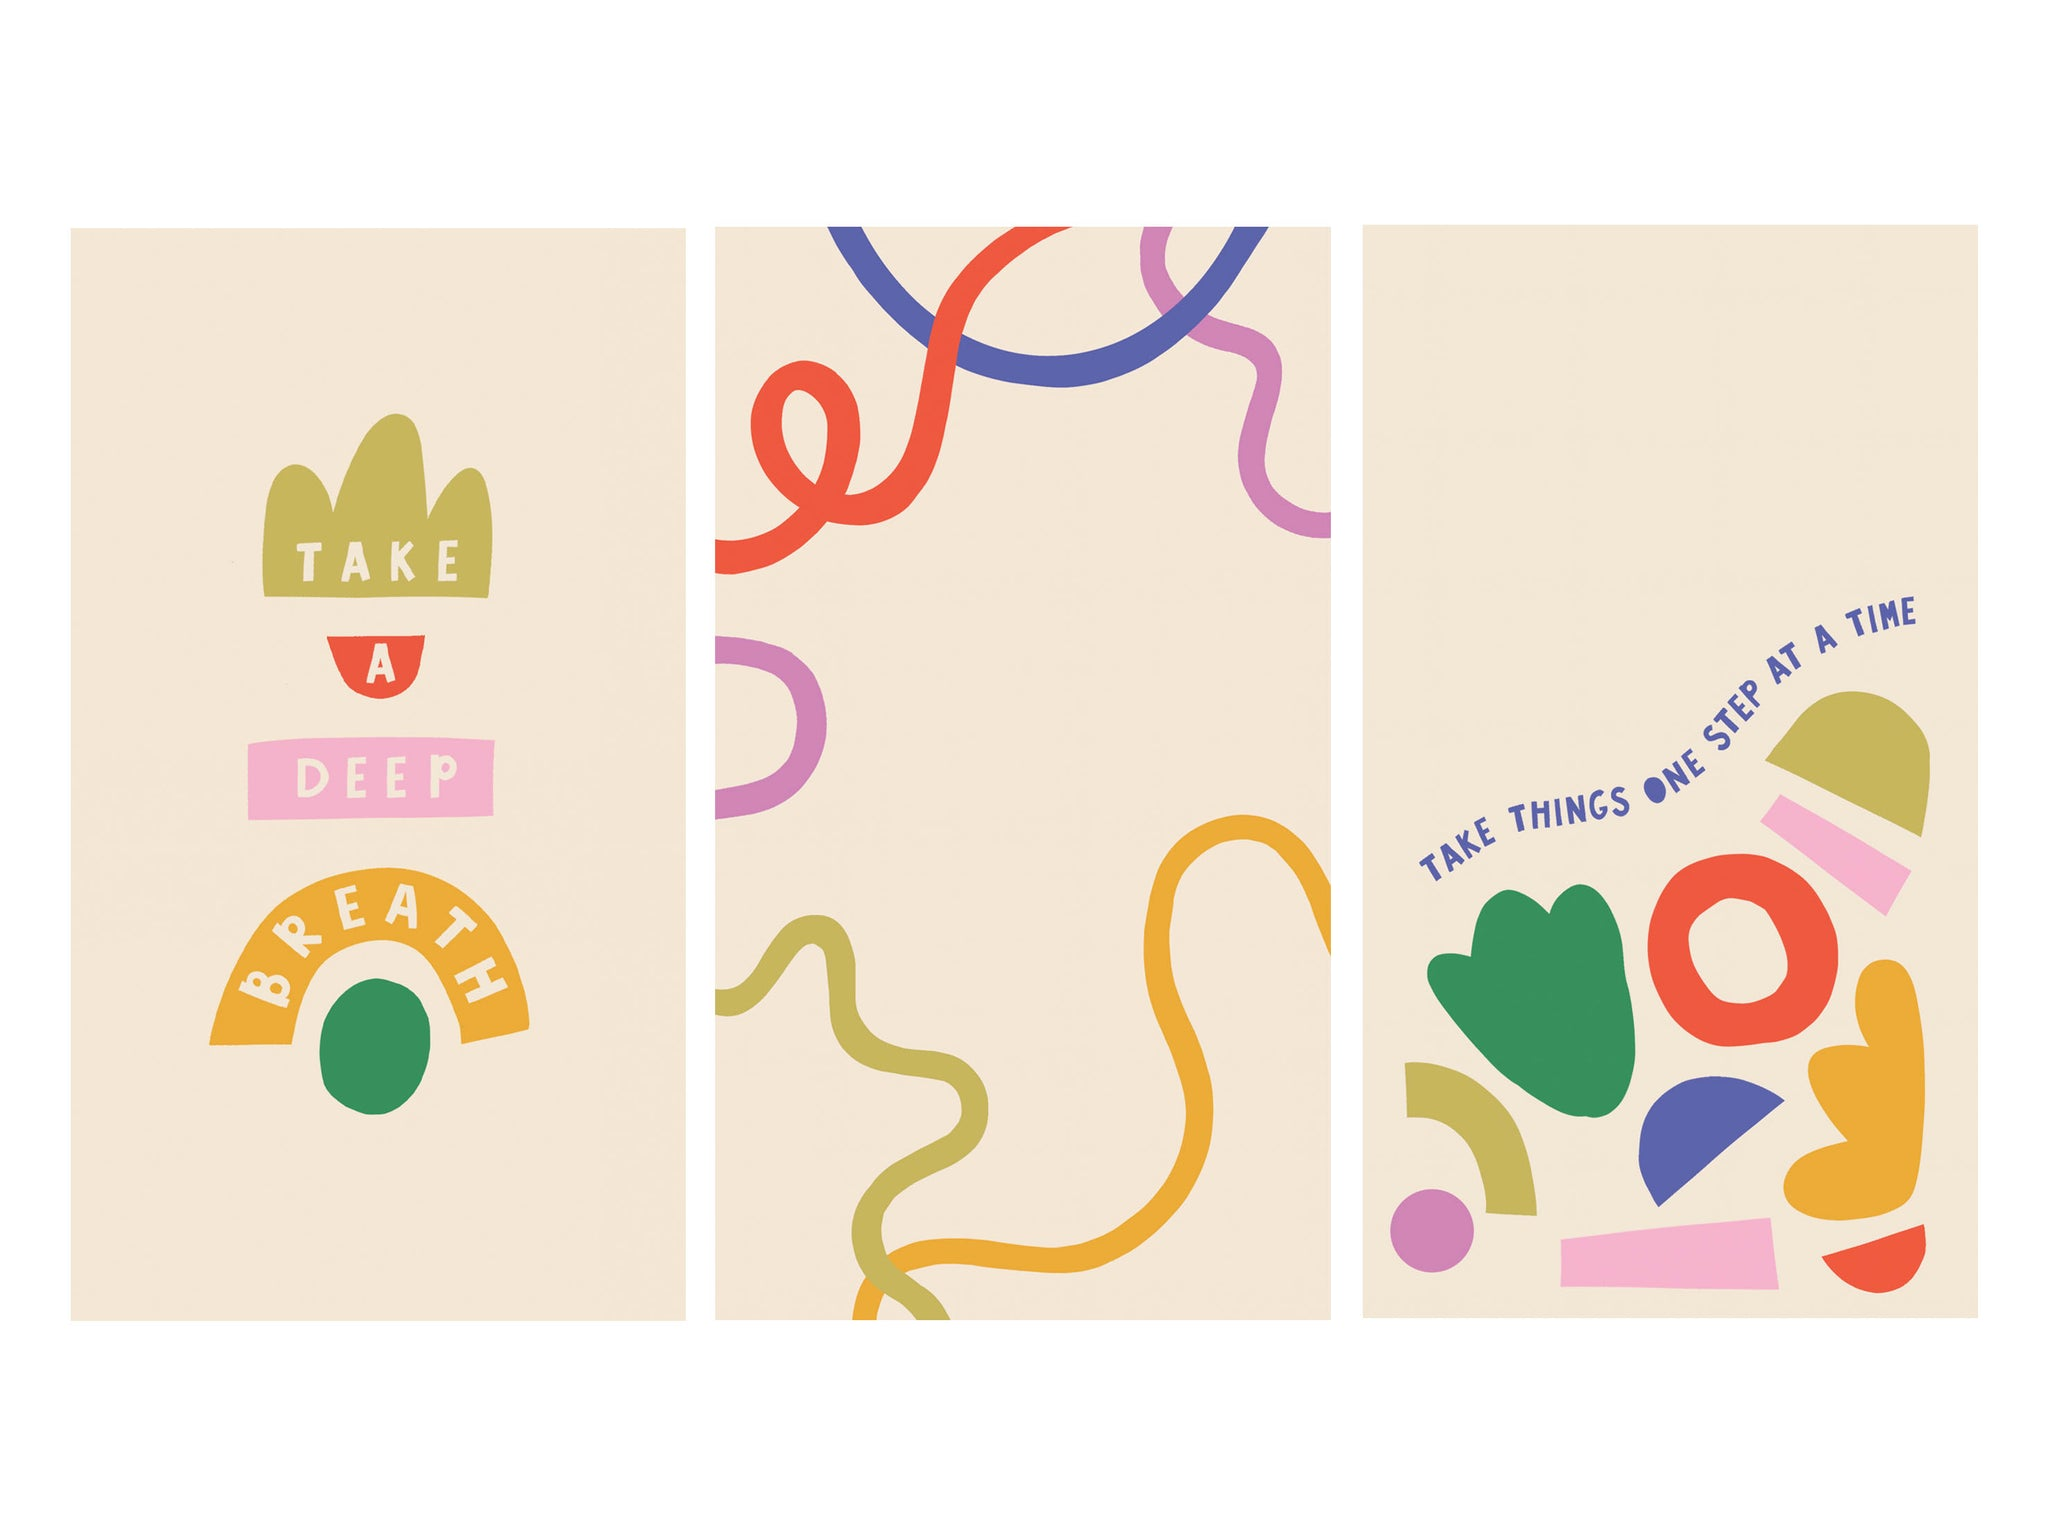 Three colourful free HD phone wallpaper downloads - 'Take a Deep Breath', colourful squiggles and 'Take one step at a time'   Raspberry Blossom